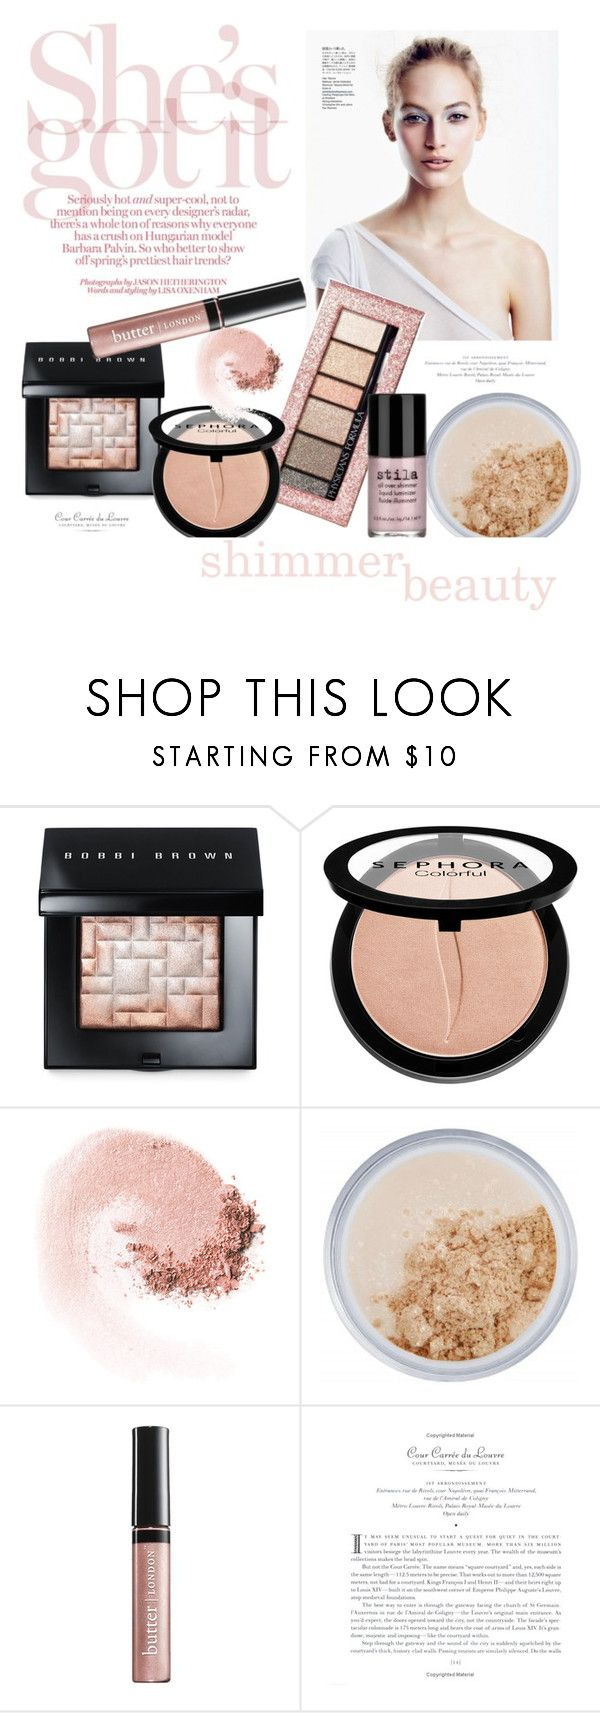 """#shimmerbeauty"" by hellodollface ❤ liked on Polyvore featuring beauty, Bobbi Brown Cosmetics, Physicians Formula, Sephora Collection, NARS Cosmetics, New CID Cosmetics, Butter London, Stila and shimmerbeauty"